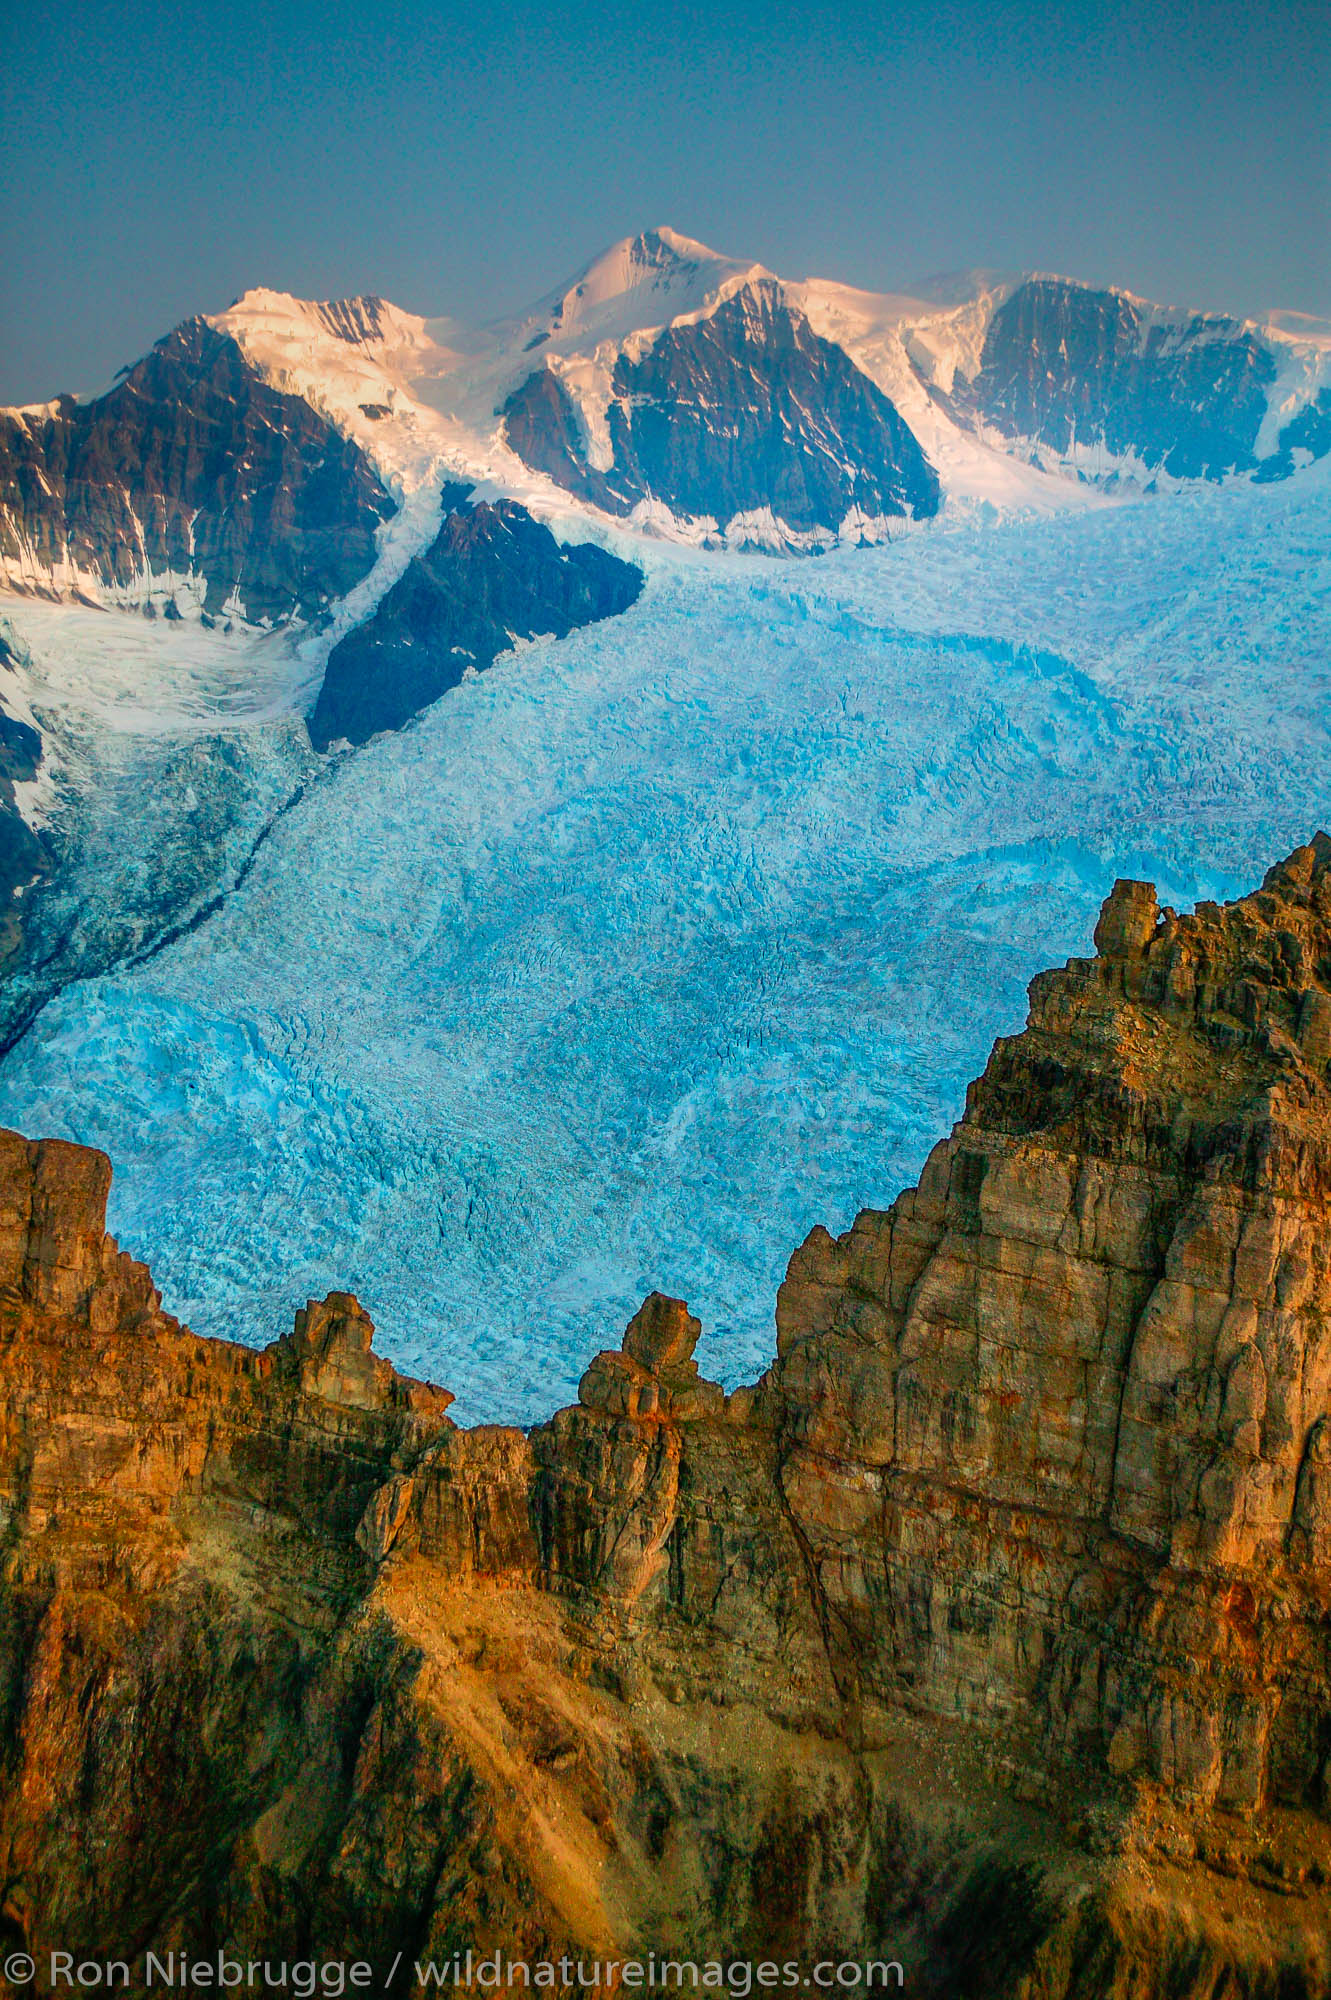 Mountains, snow and ice above the Root Glacier, Wrangell-St. Elias National Park and Preserve, Alaska.